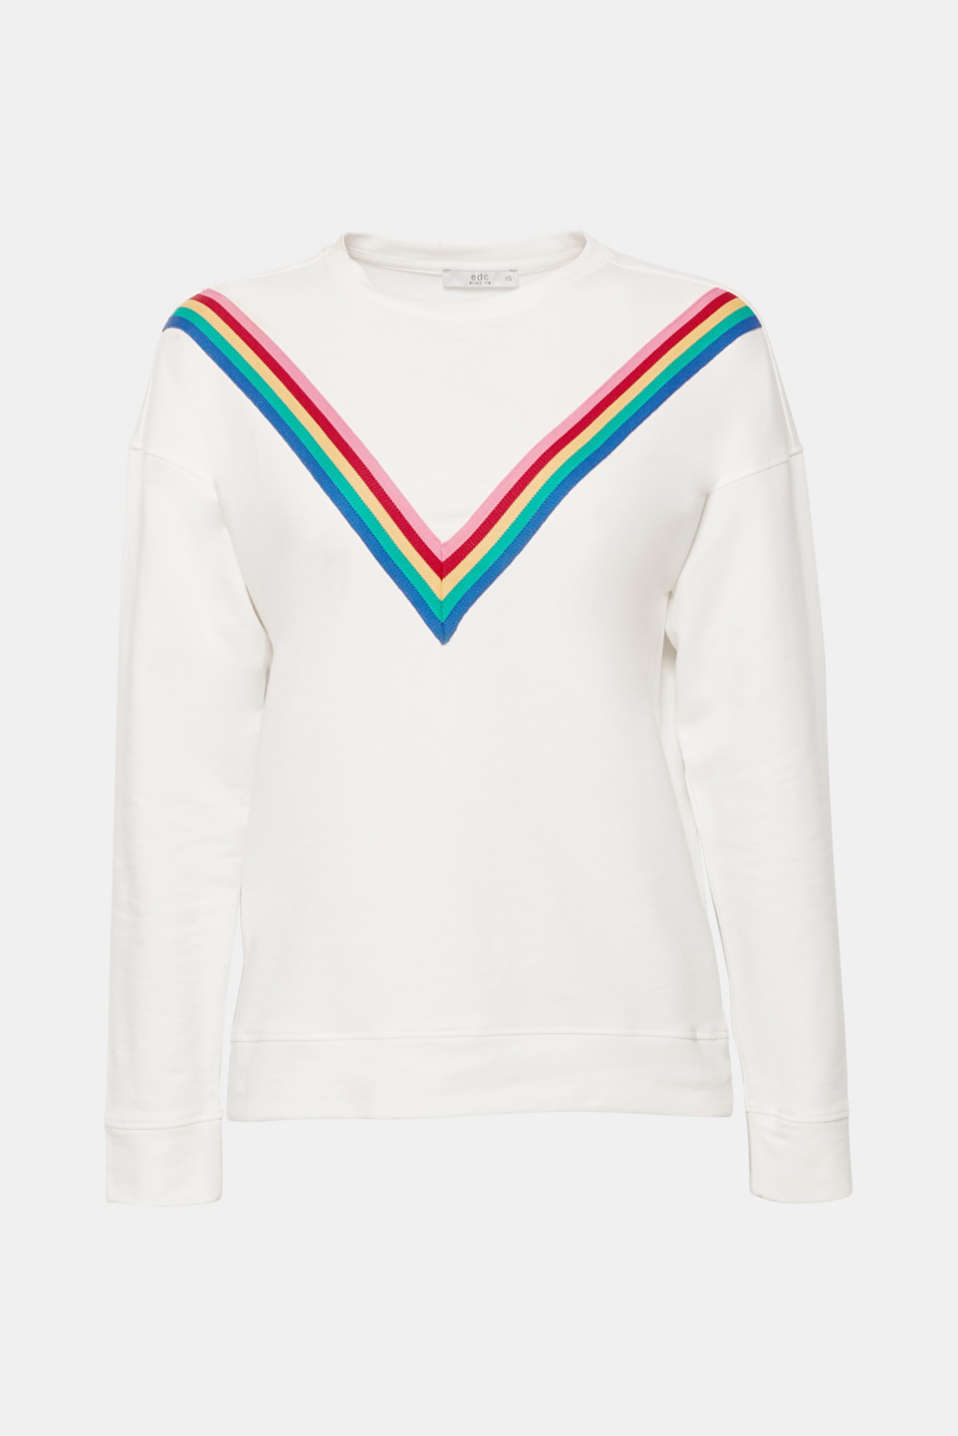 V is for victory: The appliquéd, colourful stripes give this lightweight sweatshirt made of stretch cotton a unique look!